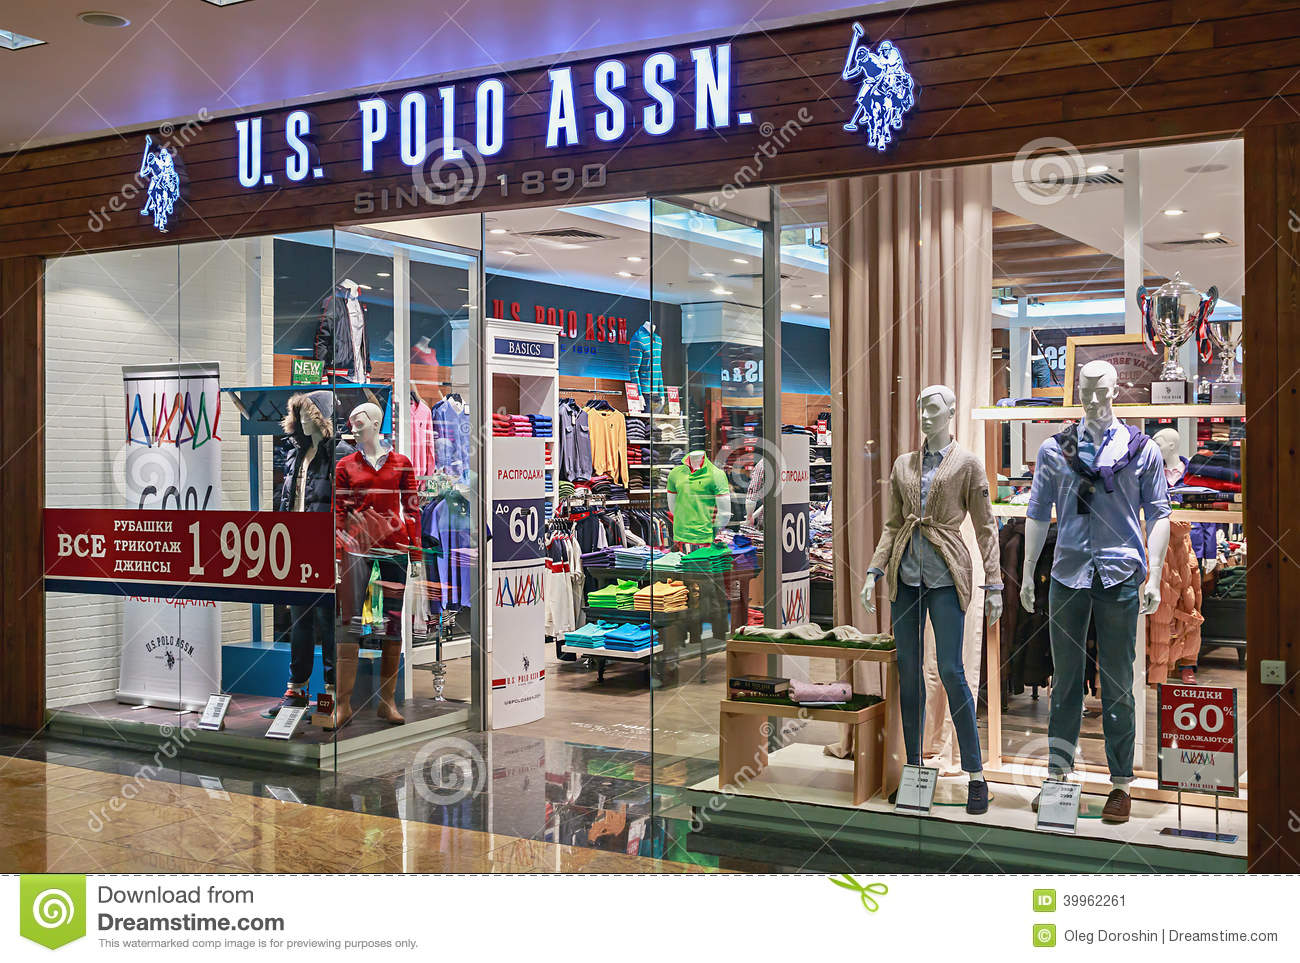 Clothing stores in the mall. Online clothing stores